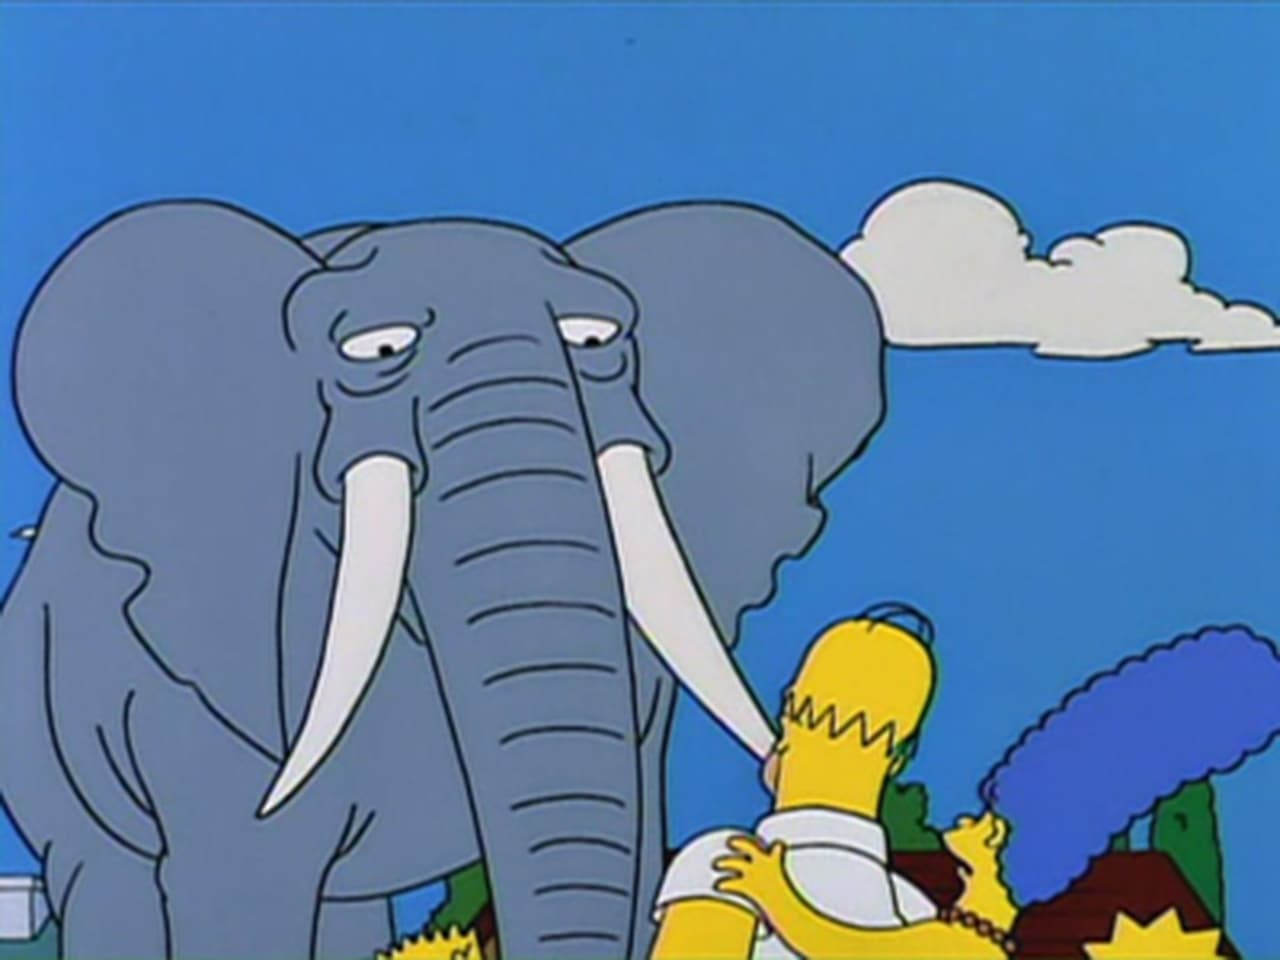 The Simpsons - Season 5 Episode 17 : Bart Gets an Elephant